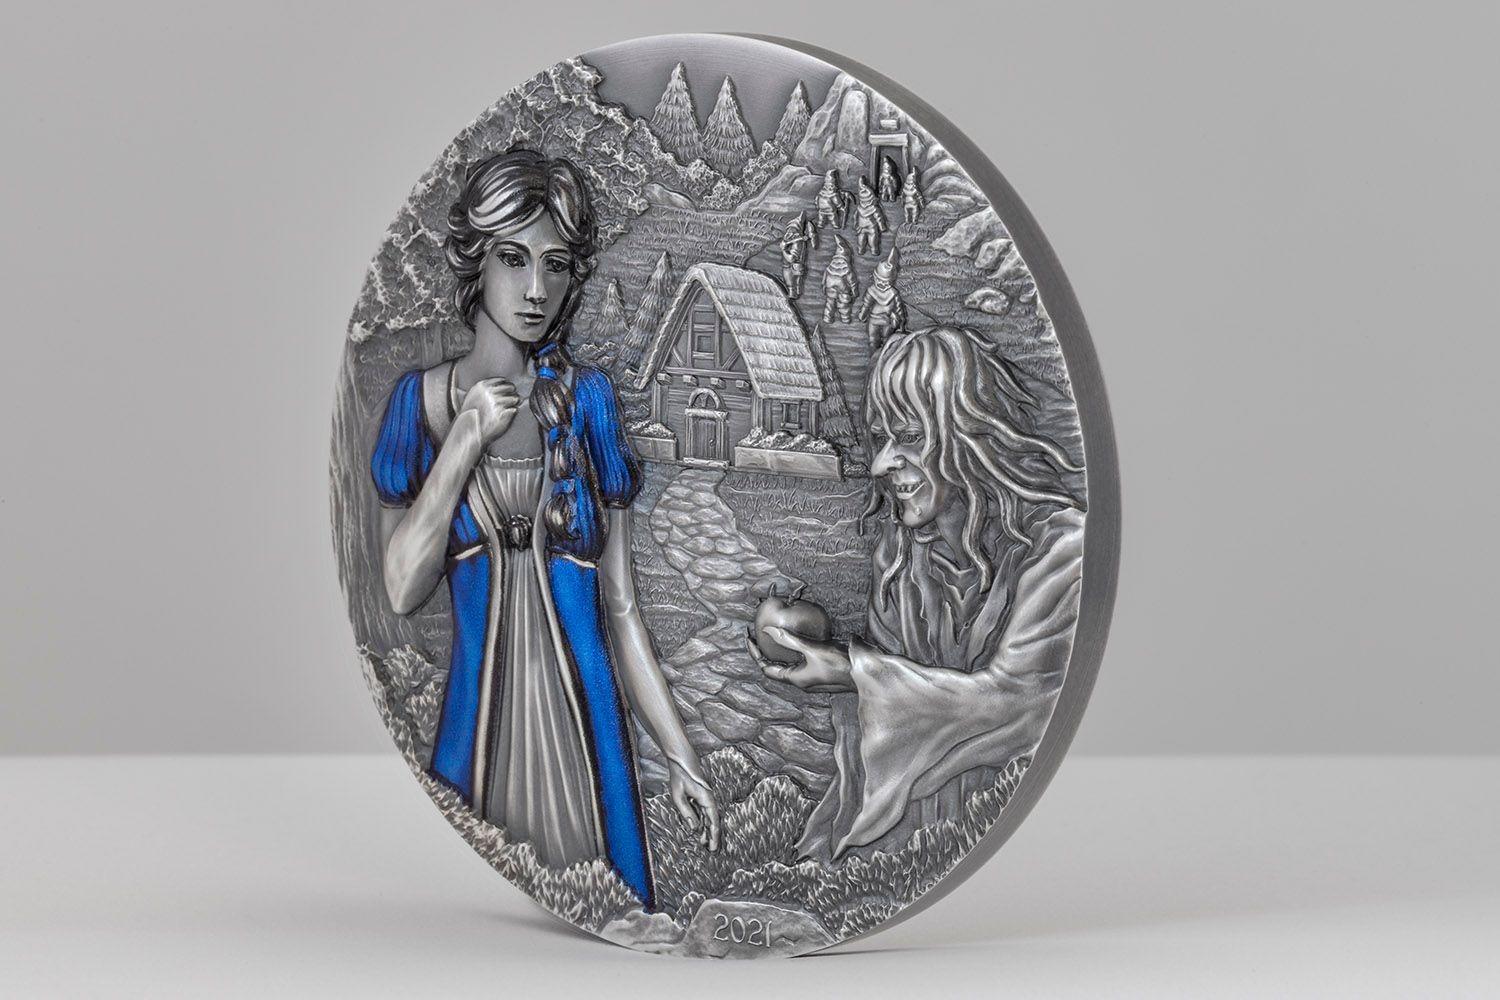 2021 Fairy Tales and Fables Snow White and the Seven Dwarves 3oz Silver Coin